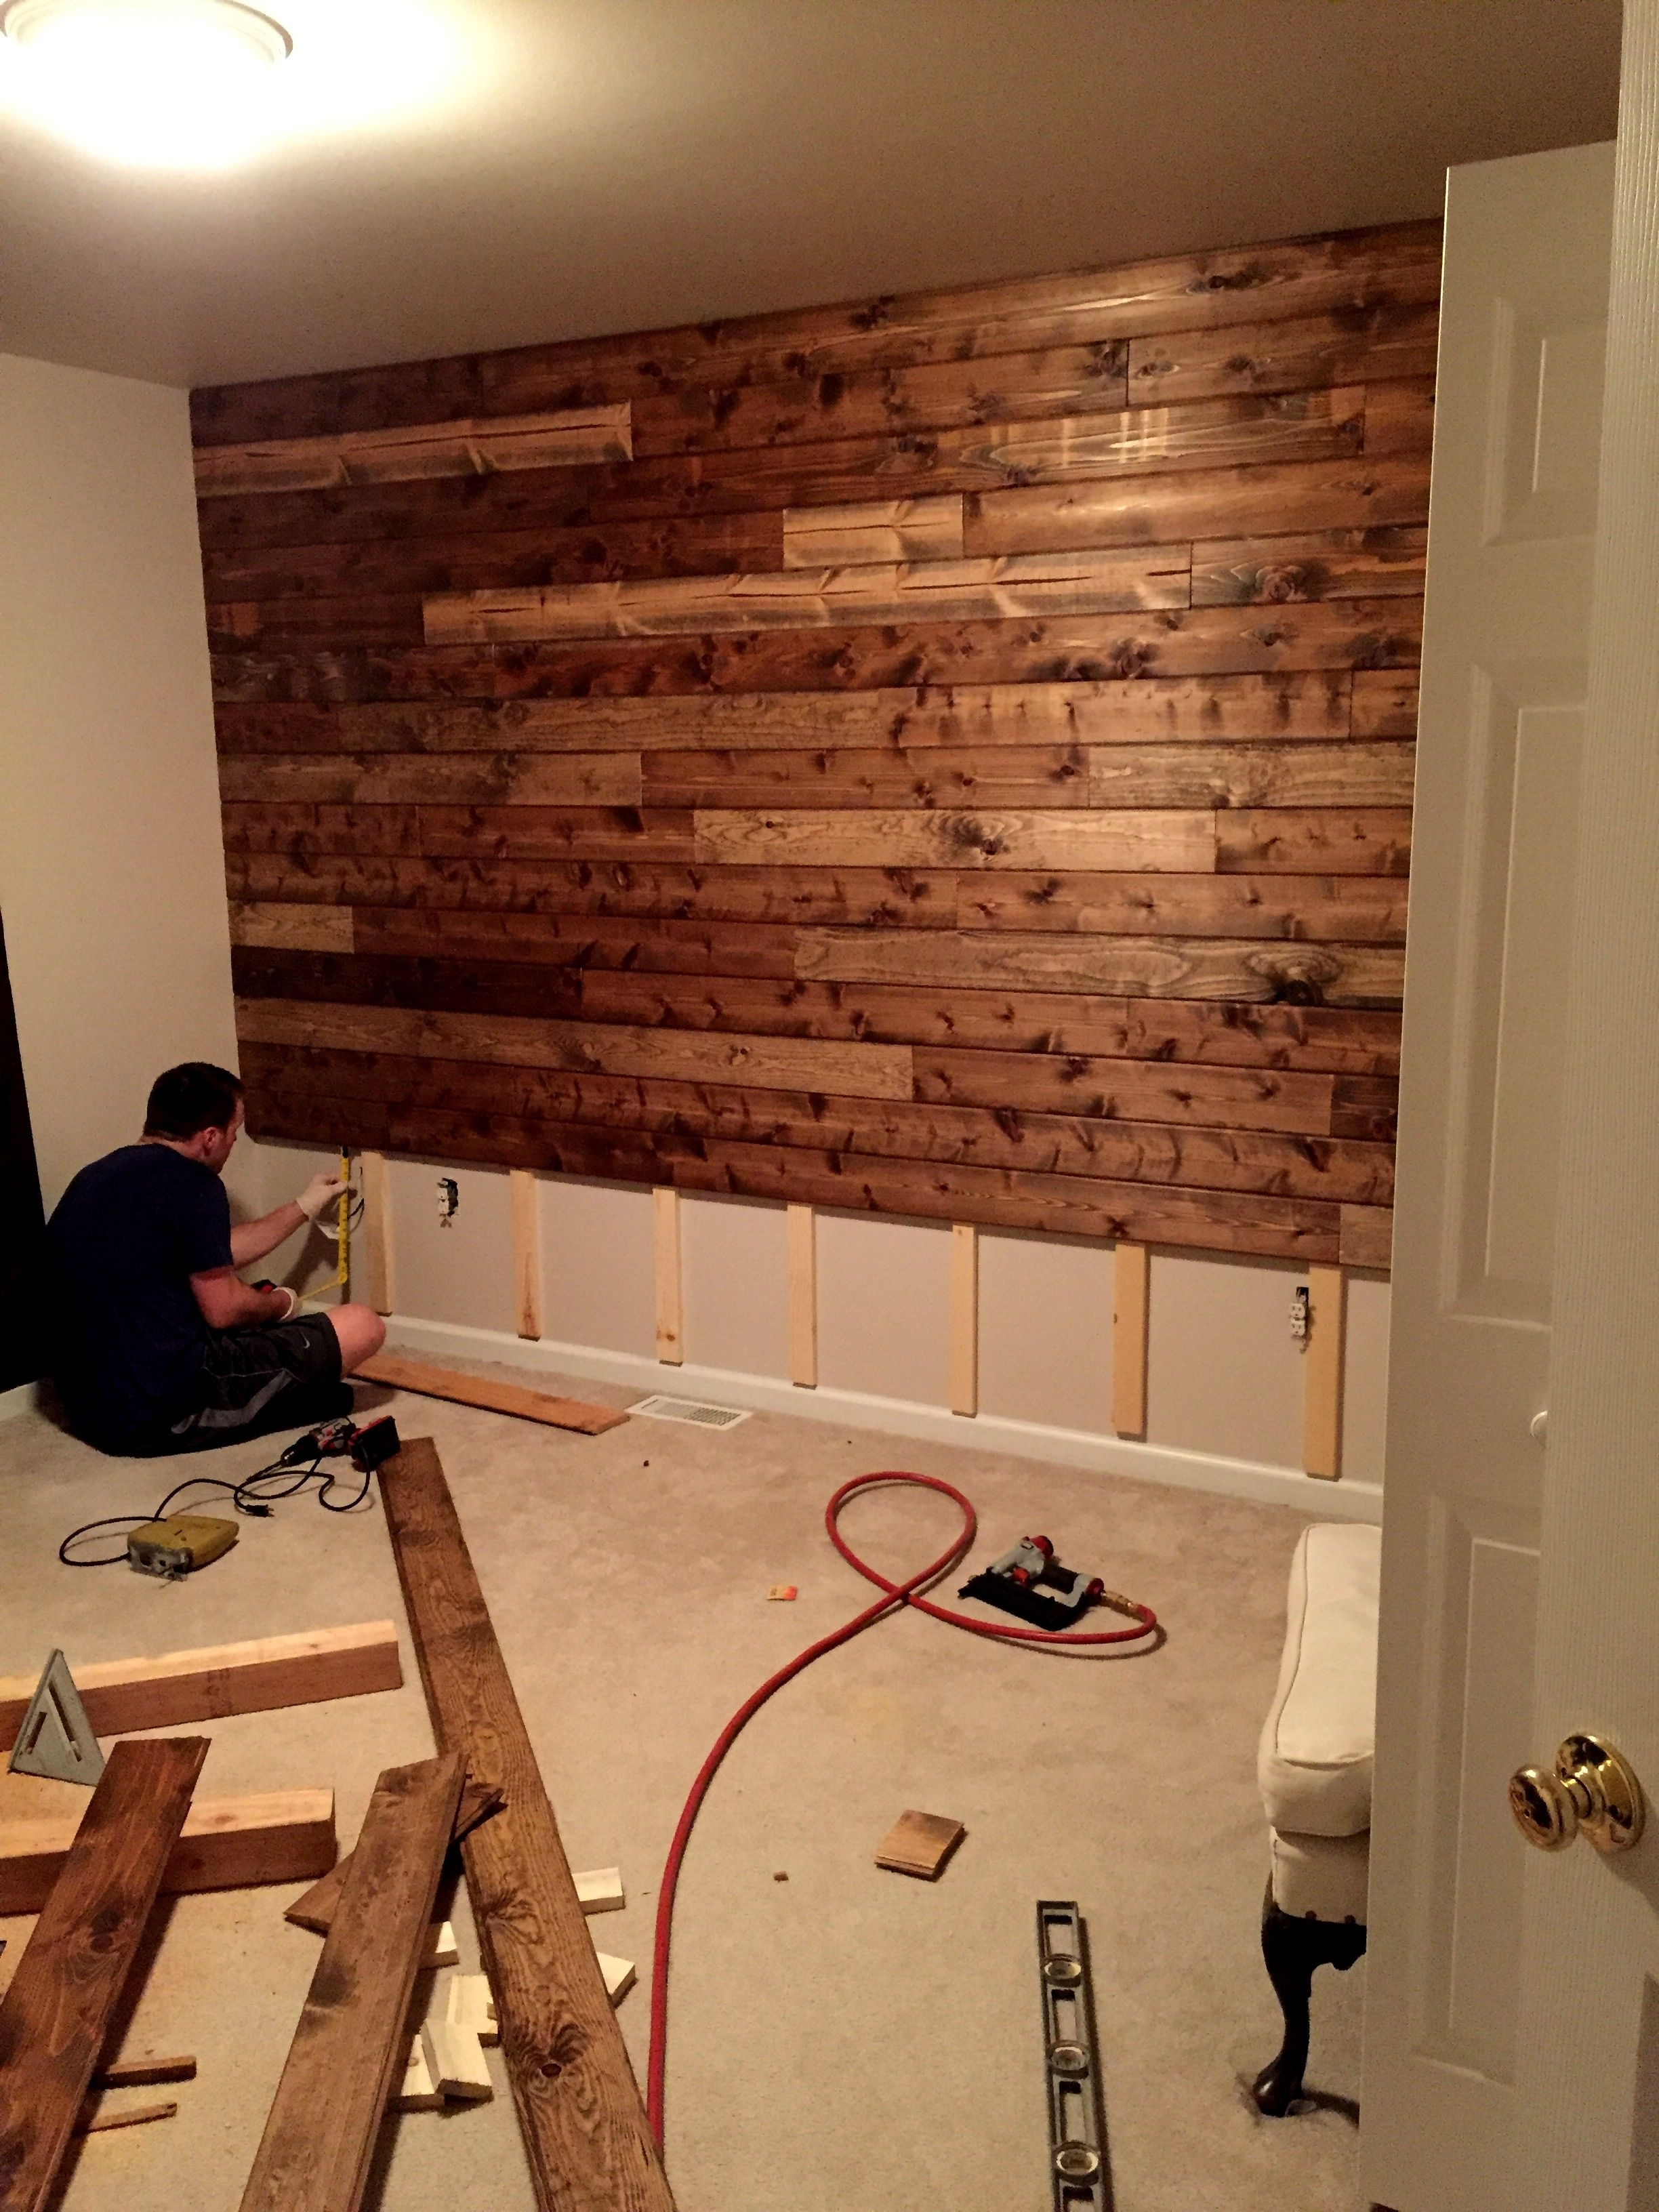 Wooden Accent Wall Tutorial | Country Decor | Pinterest With Regard To 2017 Wall Accents For Media Room (View 15 of 15)